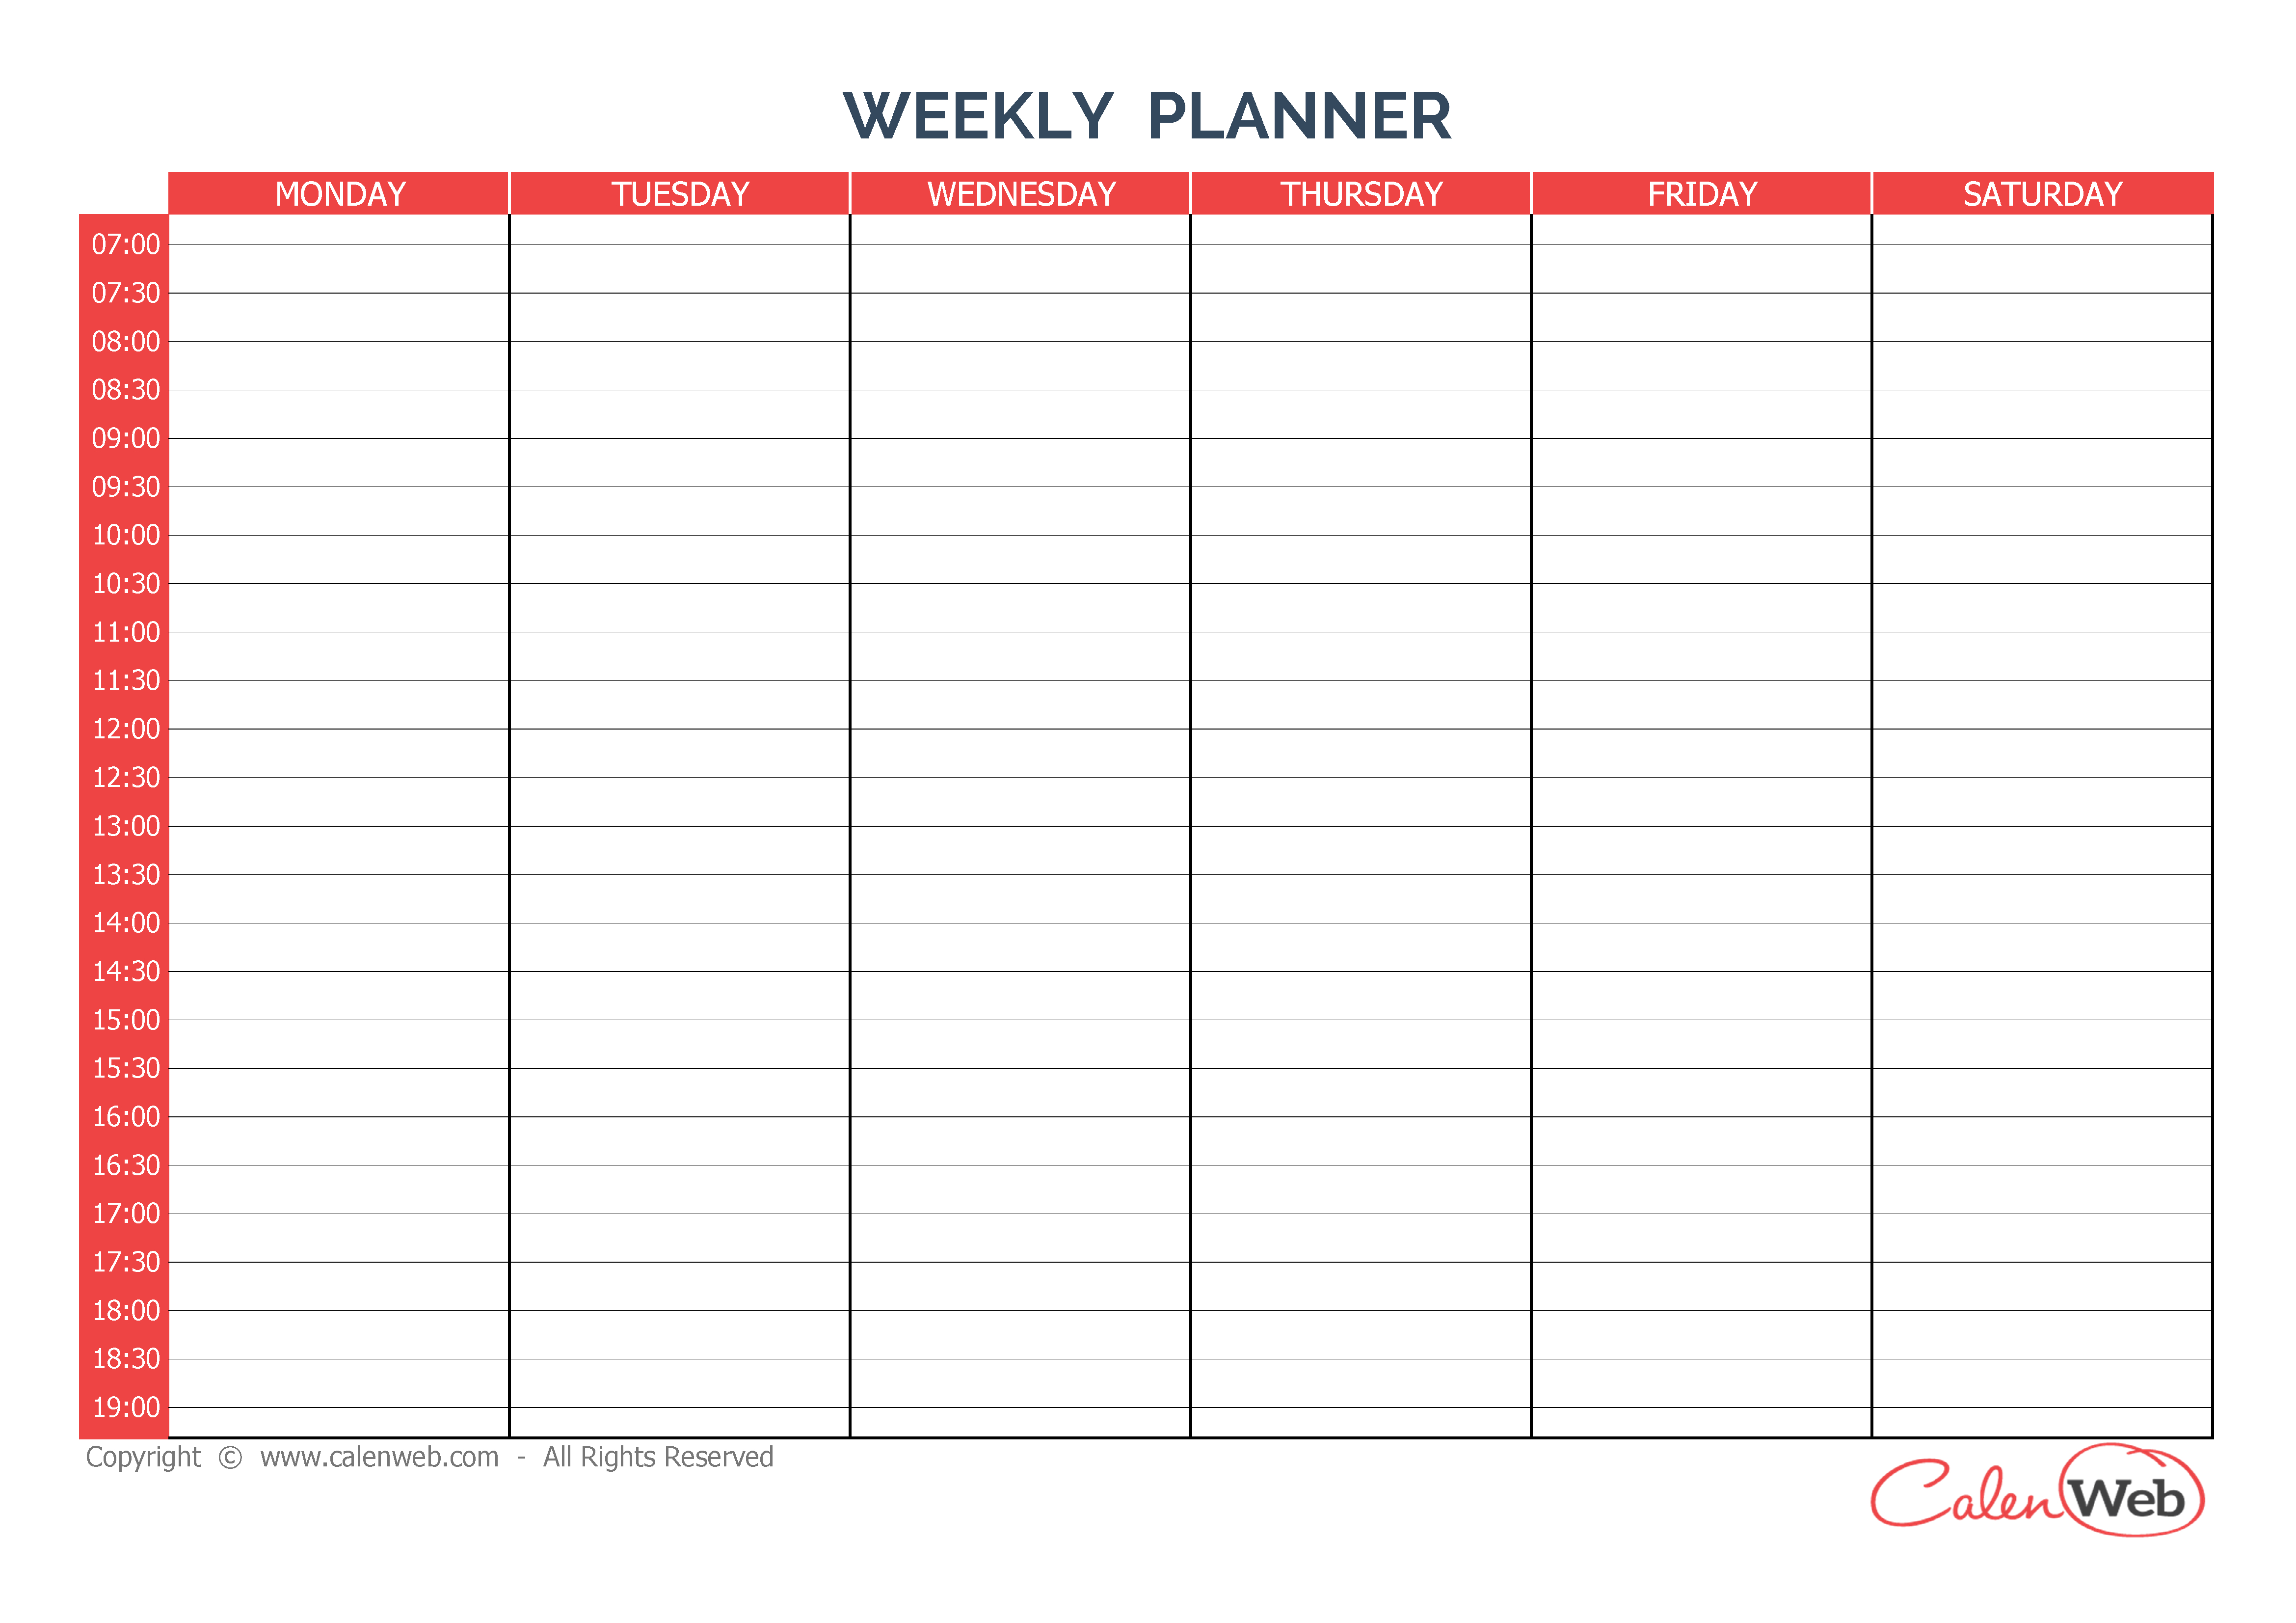 Weekly Planner 6 Days A Week Of 6 Days - Calenweb throughout 7 Day 12 Week Planner Blank